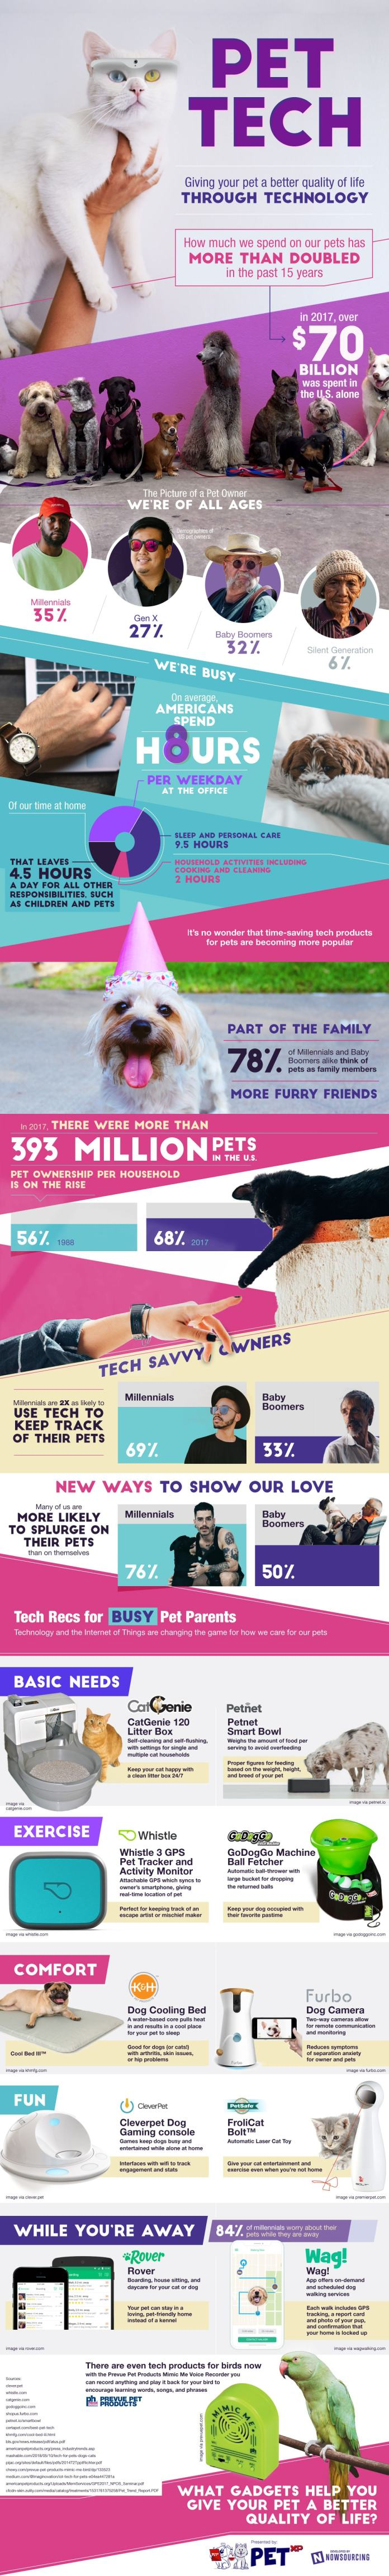 Can Tech Give Pets A Better Life? 1